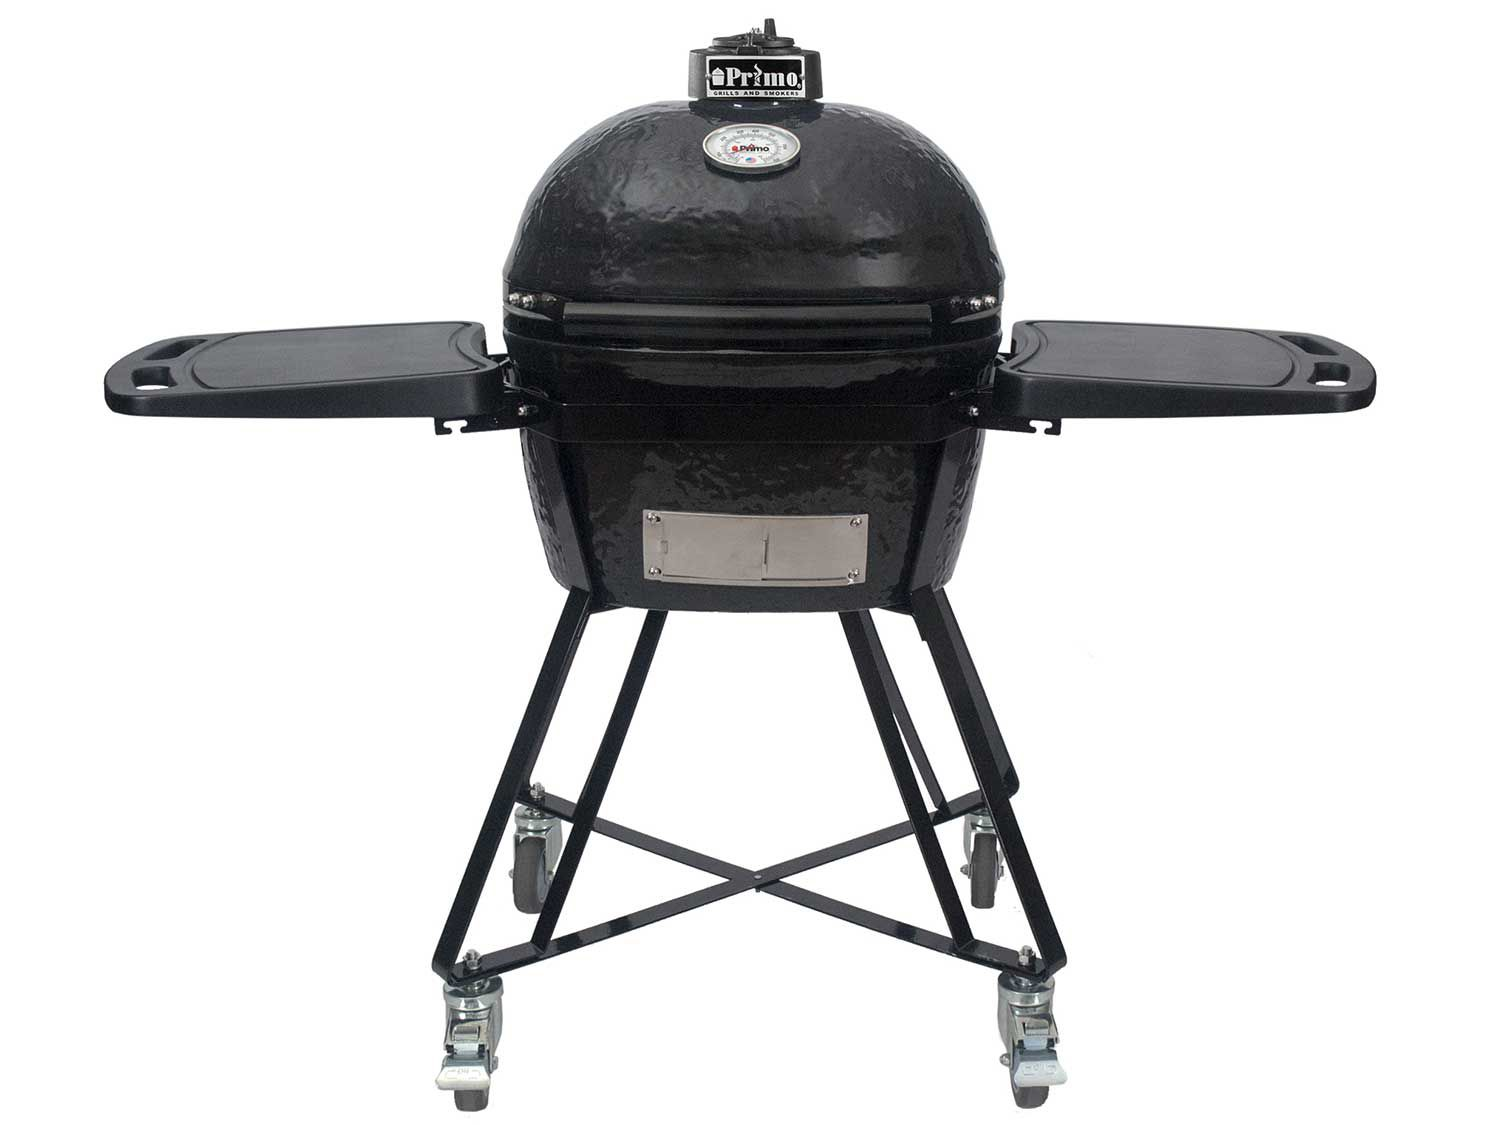 The Primo Oval JR, a small, oval-shaped kamado-style cooker with two side shelves